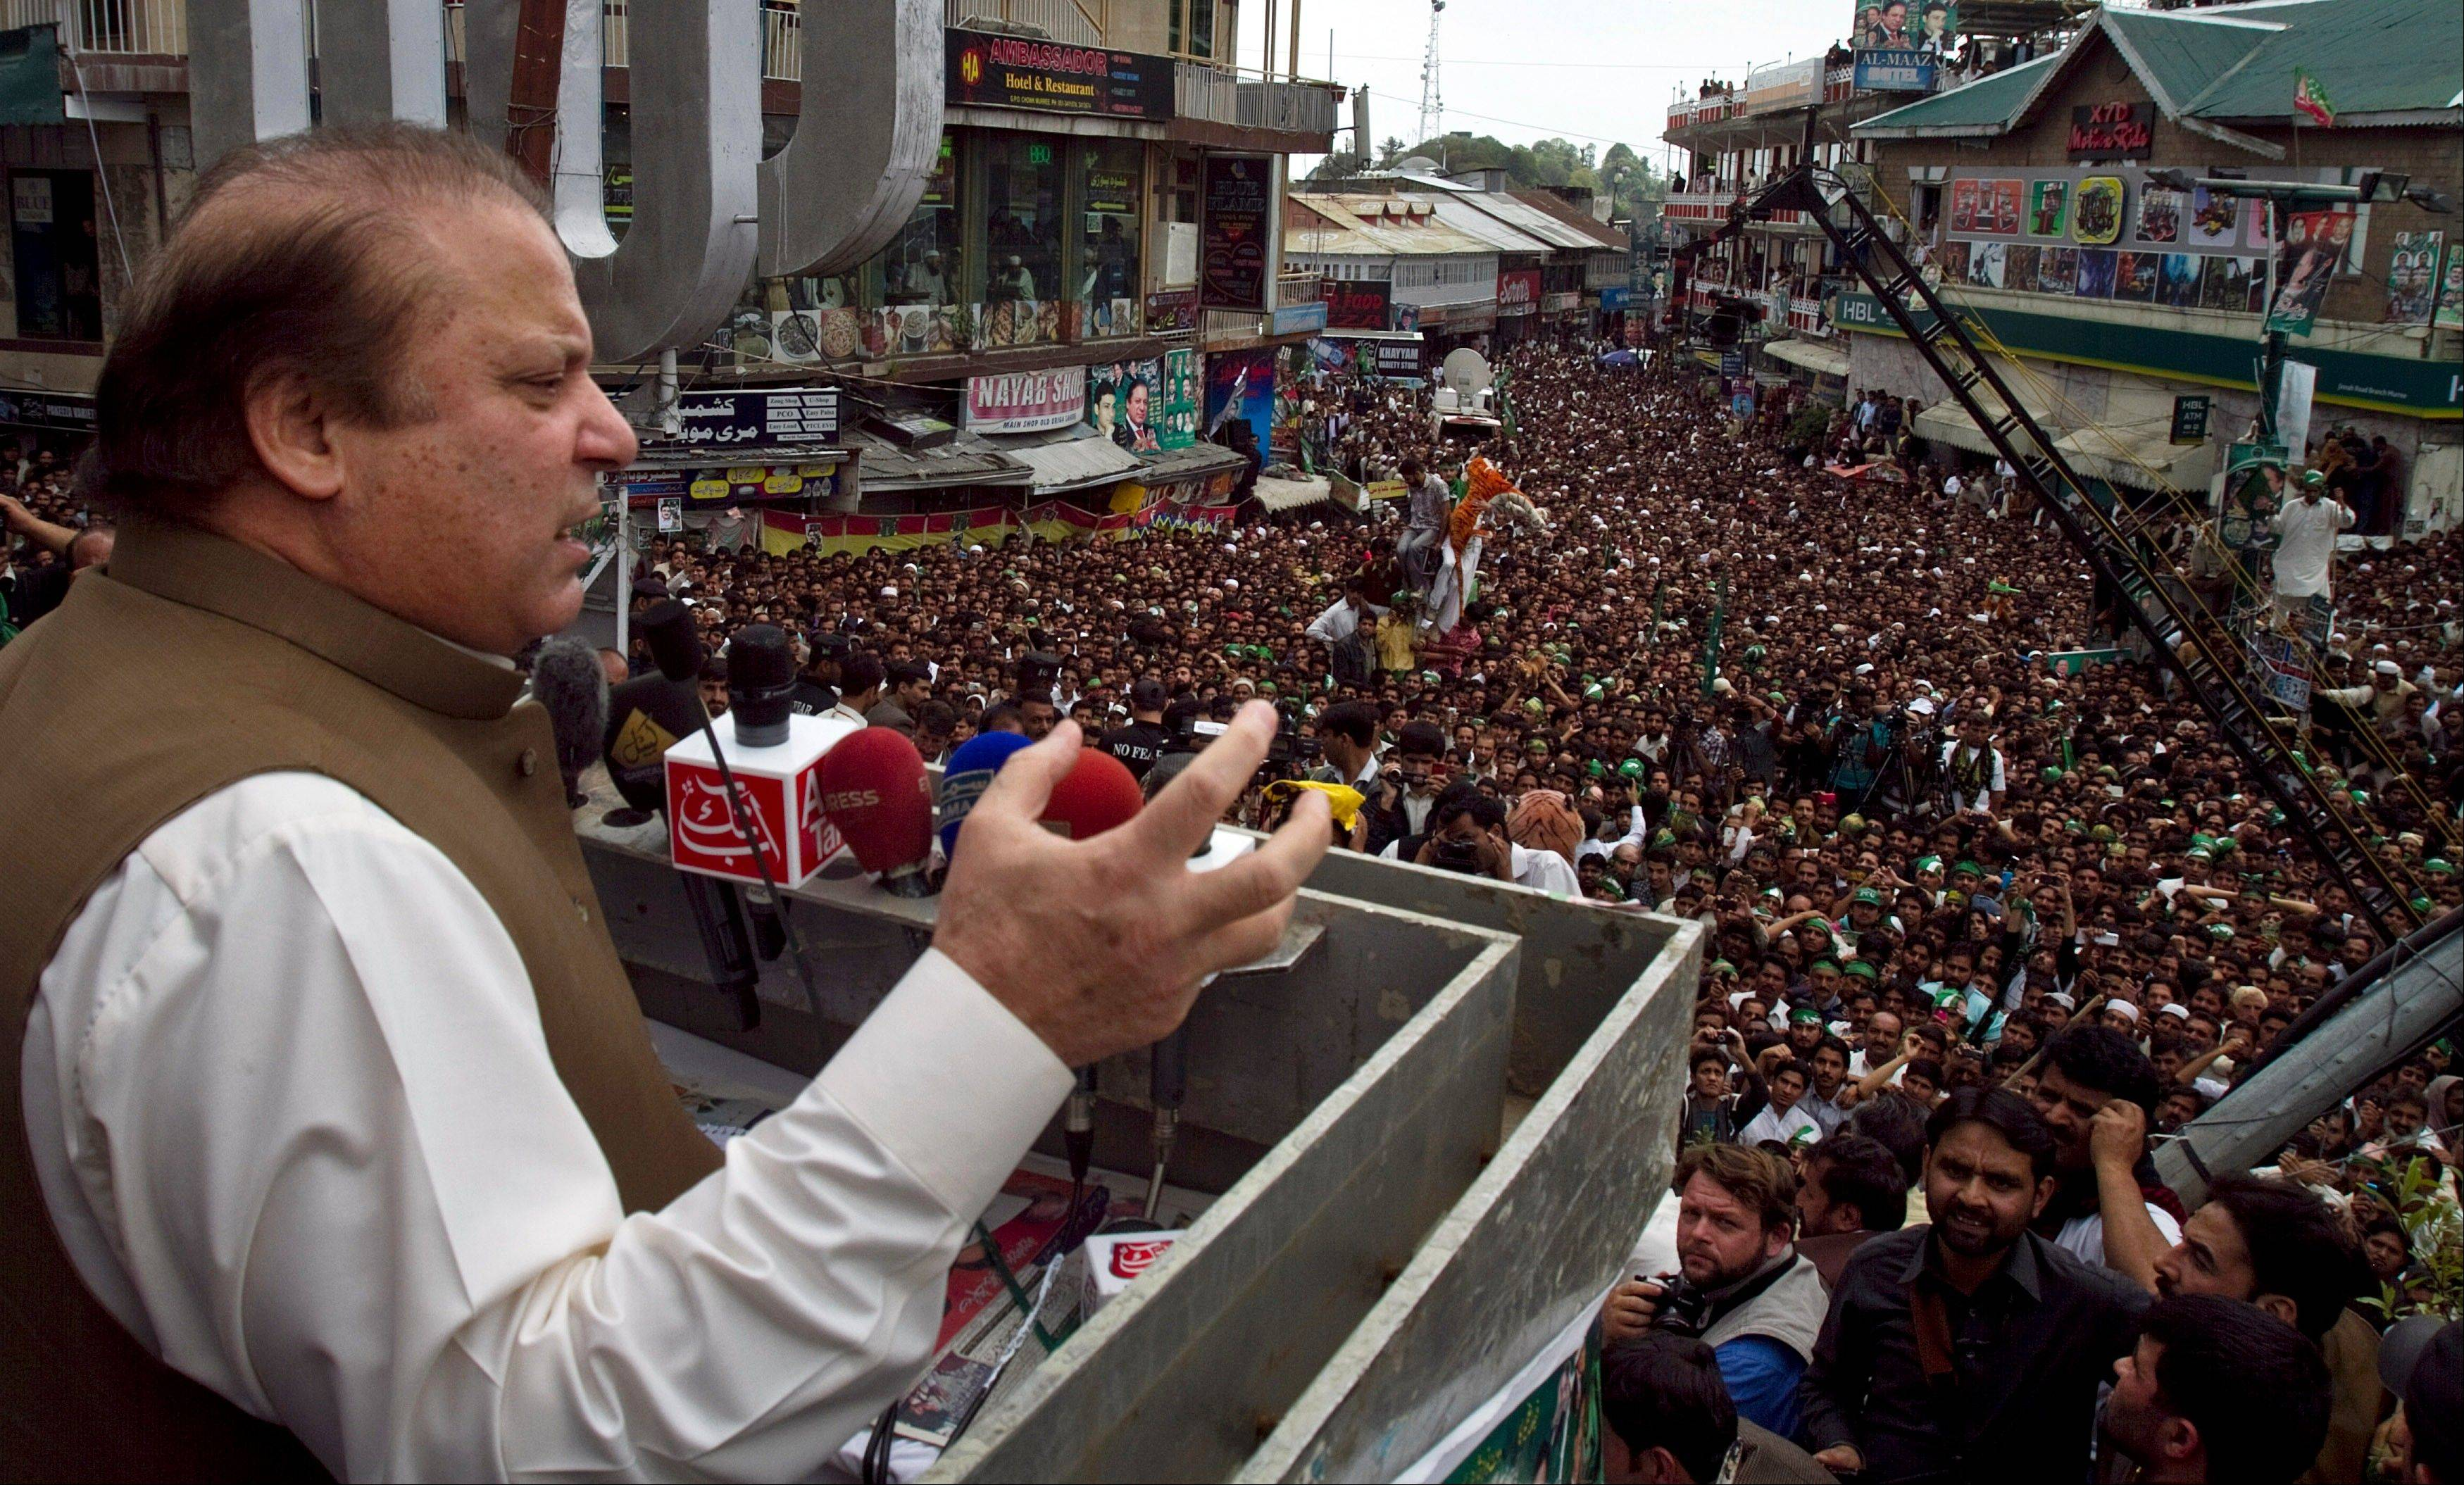 Pakistan's former Prime Minister and leader of the Pakistan Muslim League Nawaz Sharif has criticized the outgoing Pakistan People's Party for selling out the country's sovereignty in exchange for U.S. aid and likes to recount how he tested Pakistan's first nuclear weapon in 1998 despite American pressure.